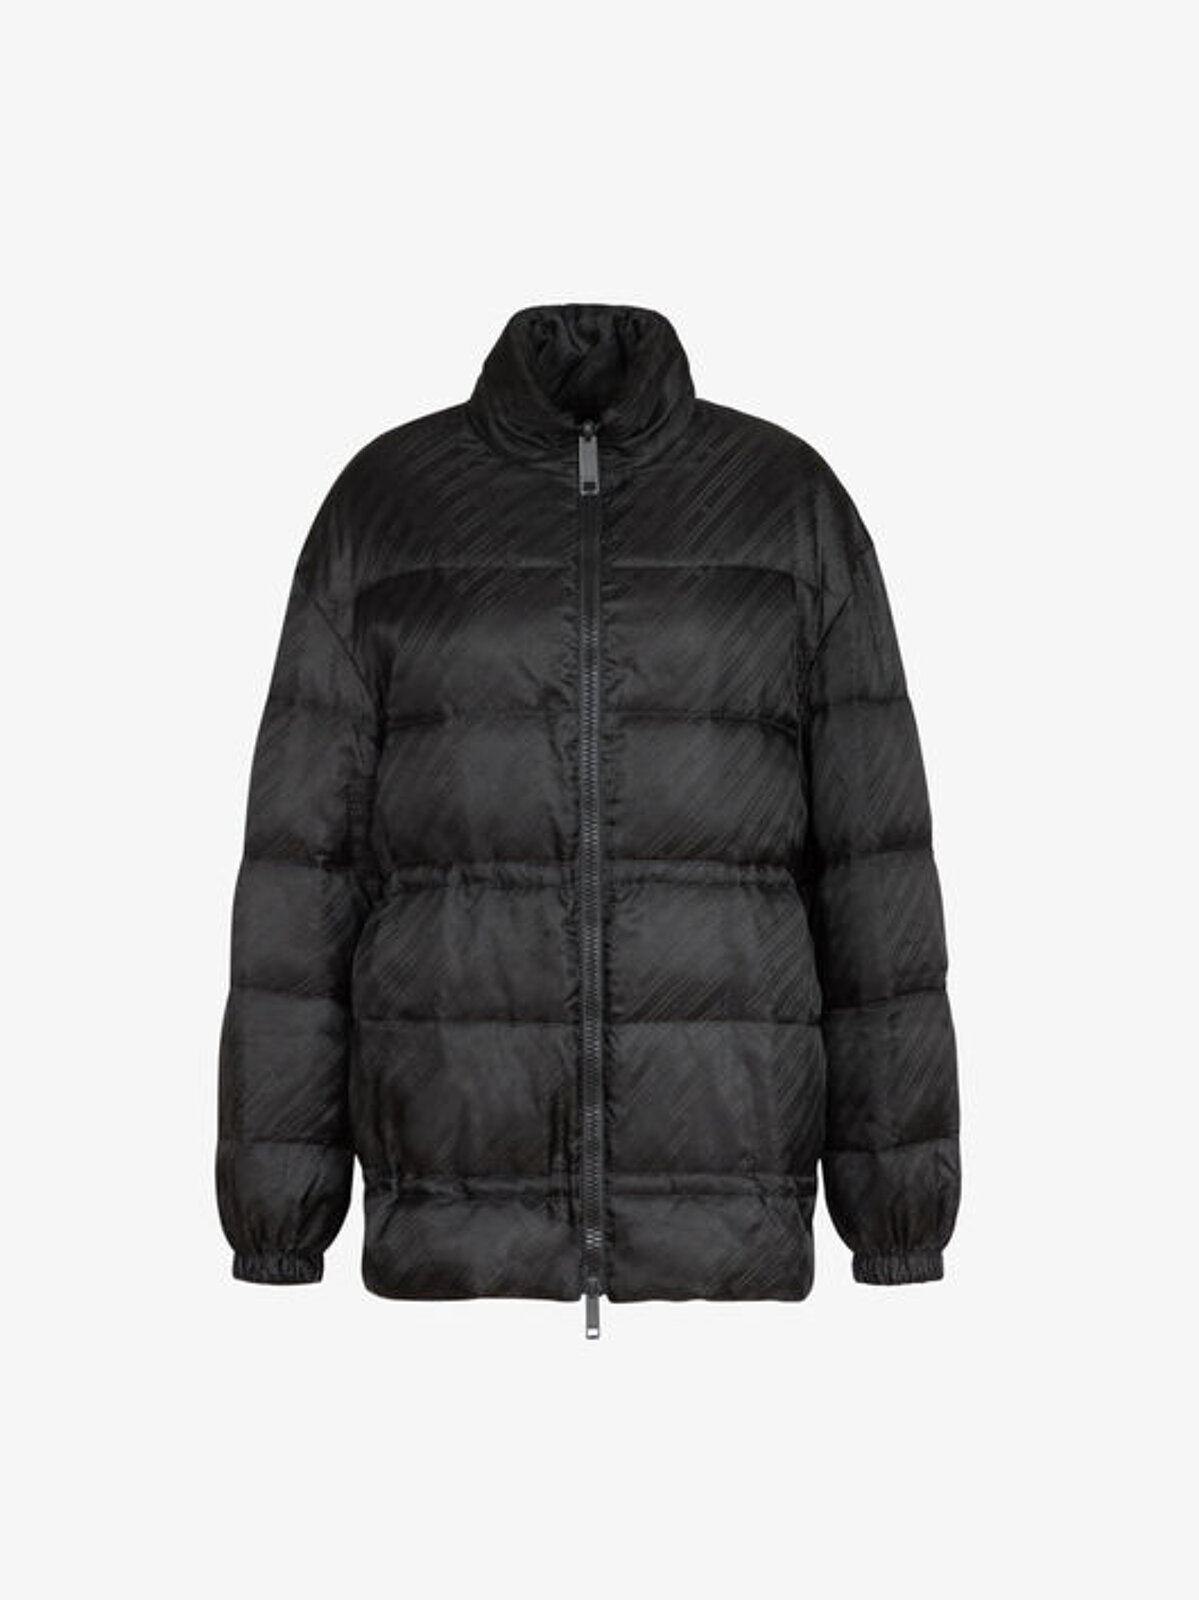 Givenchy Chaîne Reversible Down Jacket - Givenchy